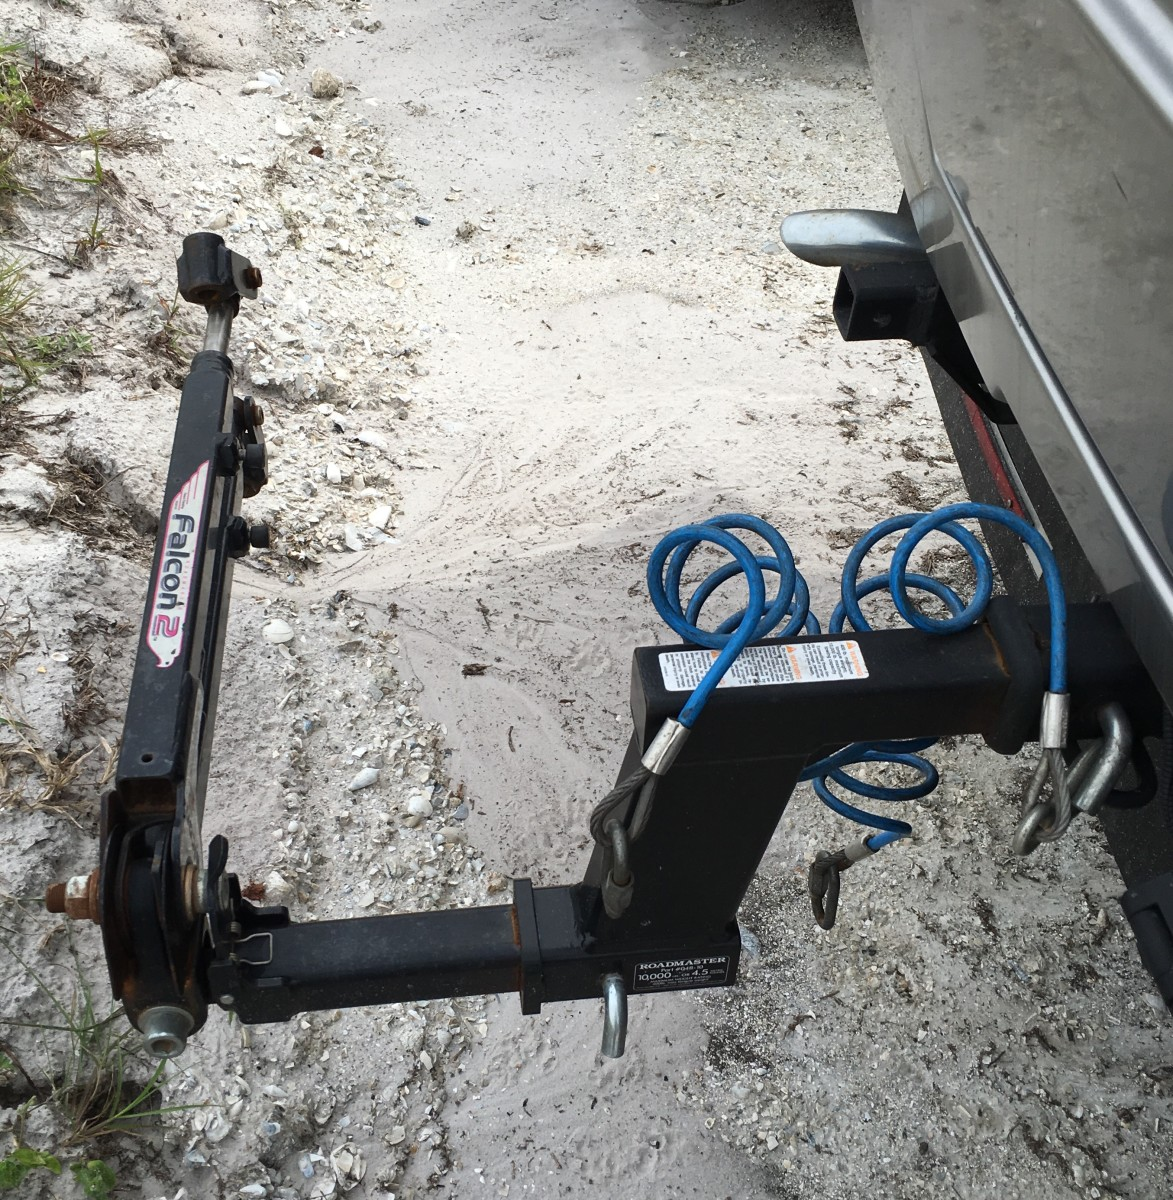 Towing Methods and Electrical Connections for an RV Towing a Car